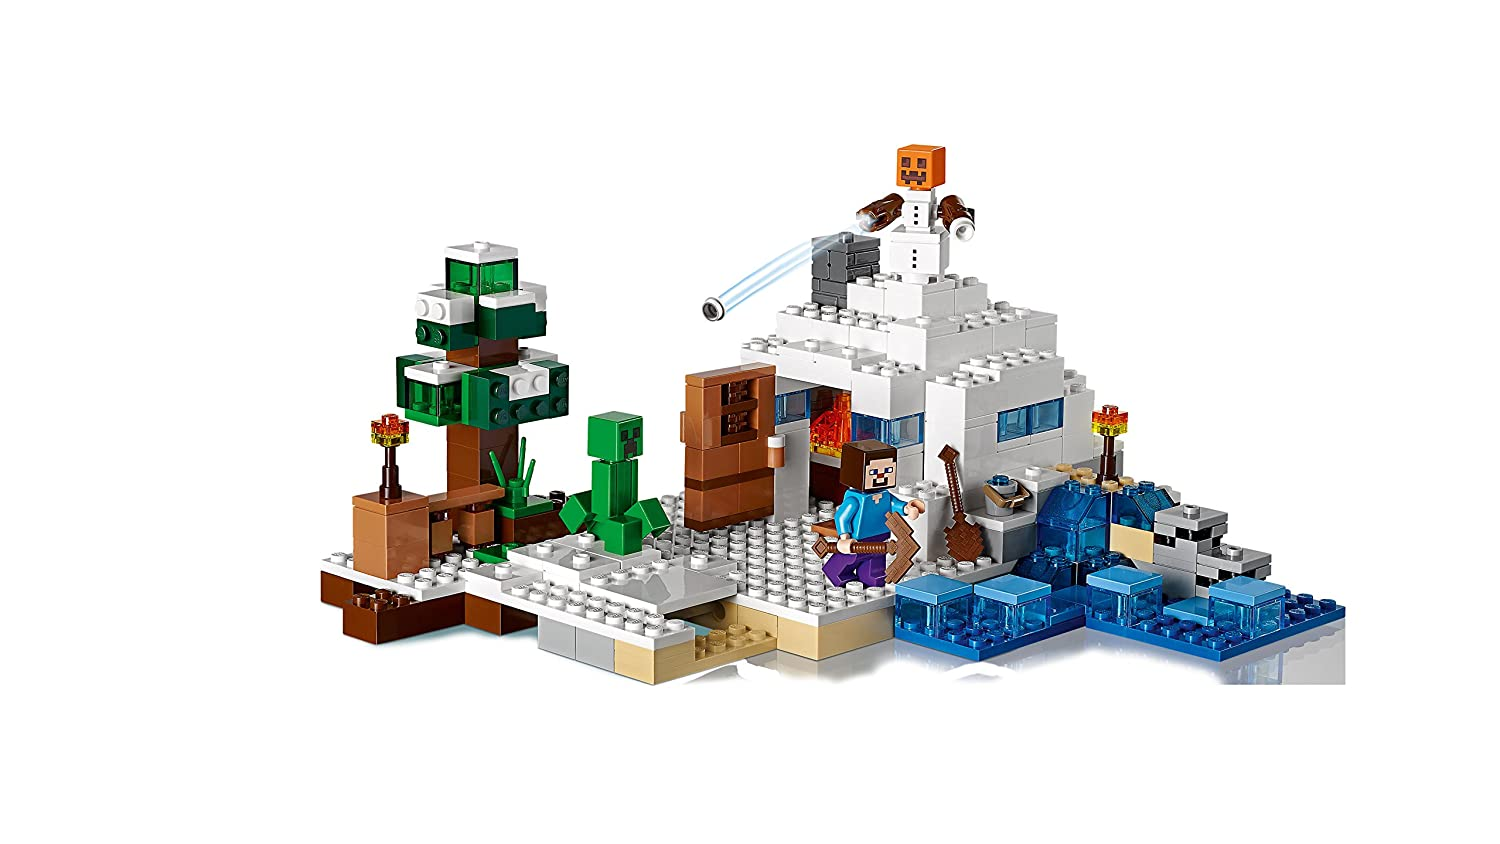 Lego Like Toys : Minecraft lego toys kids the snow hideout and similar items